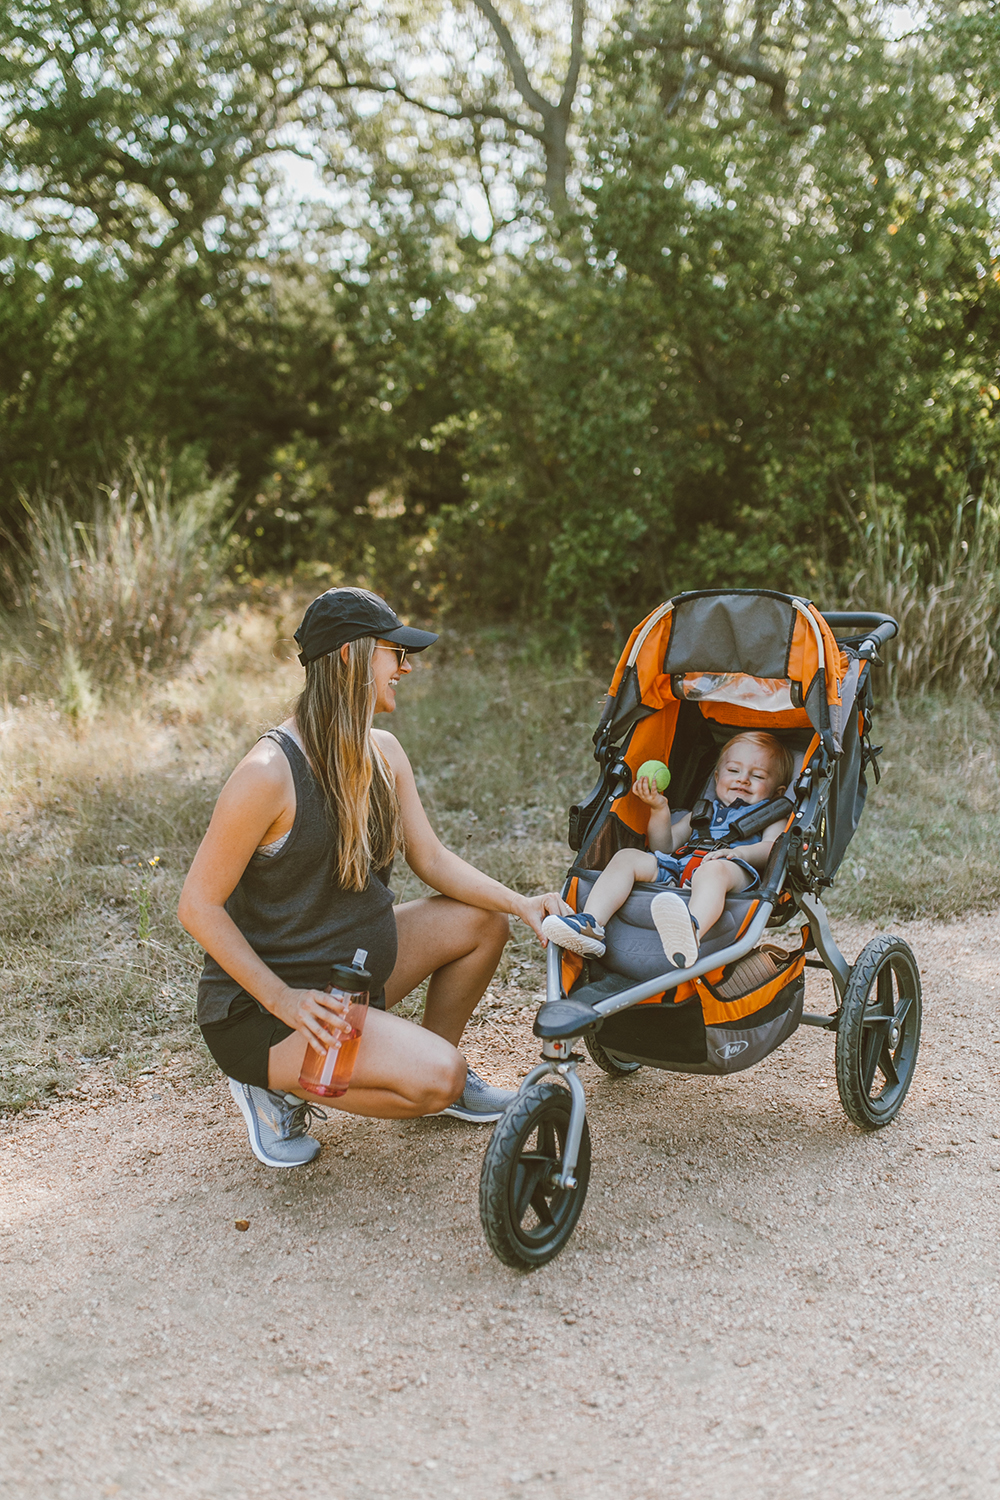 livvyland-blog-olivia-watson-austin-texas-lifestyle-mom-blogger-pregnant-jogging-stroller-gear-backcountry-5